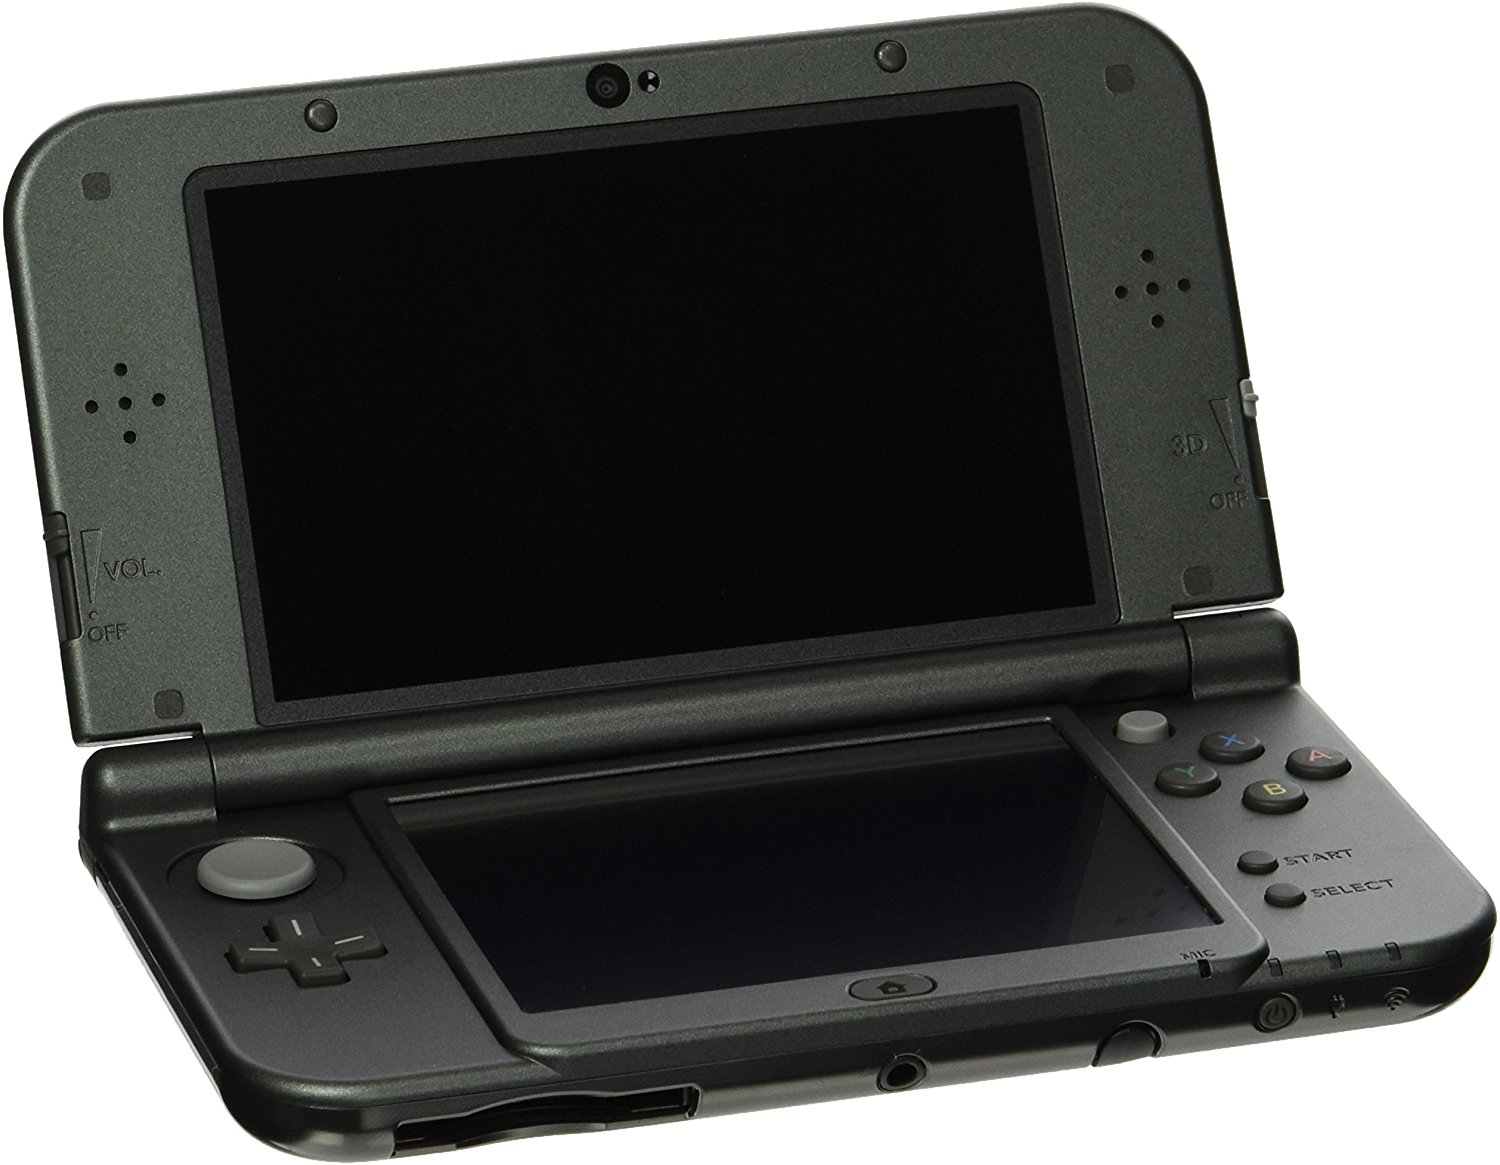 New Nintendo 3DS XL Black- With 4 3DS games